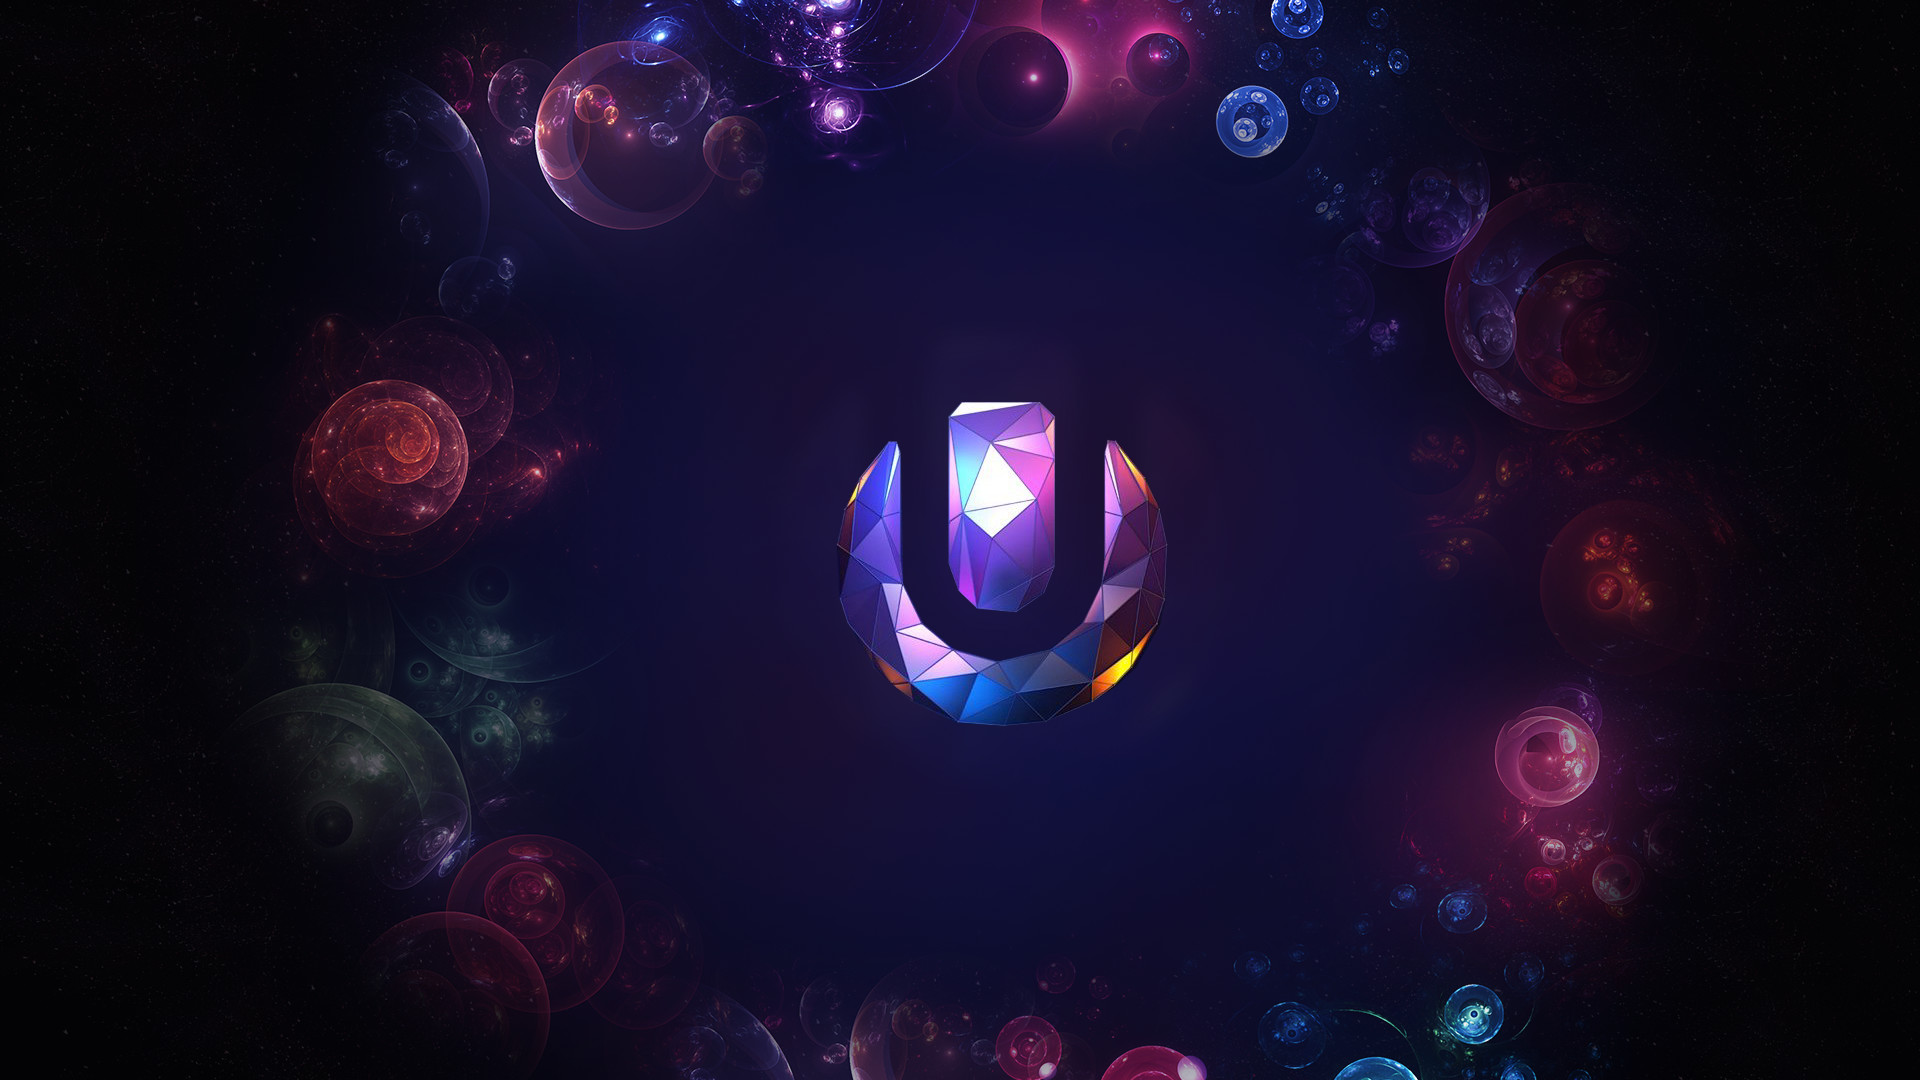 Ultra Music Festival Background by paulischebeck Ultra Music Festival  Background by paulischebeck